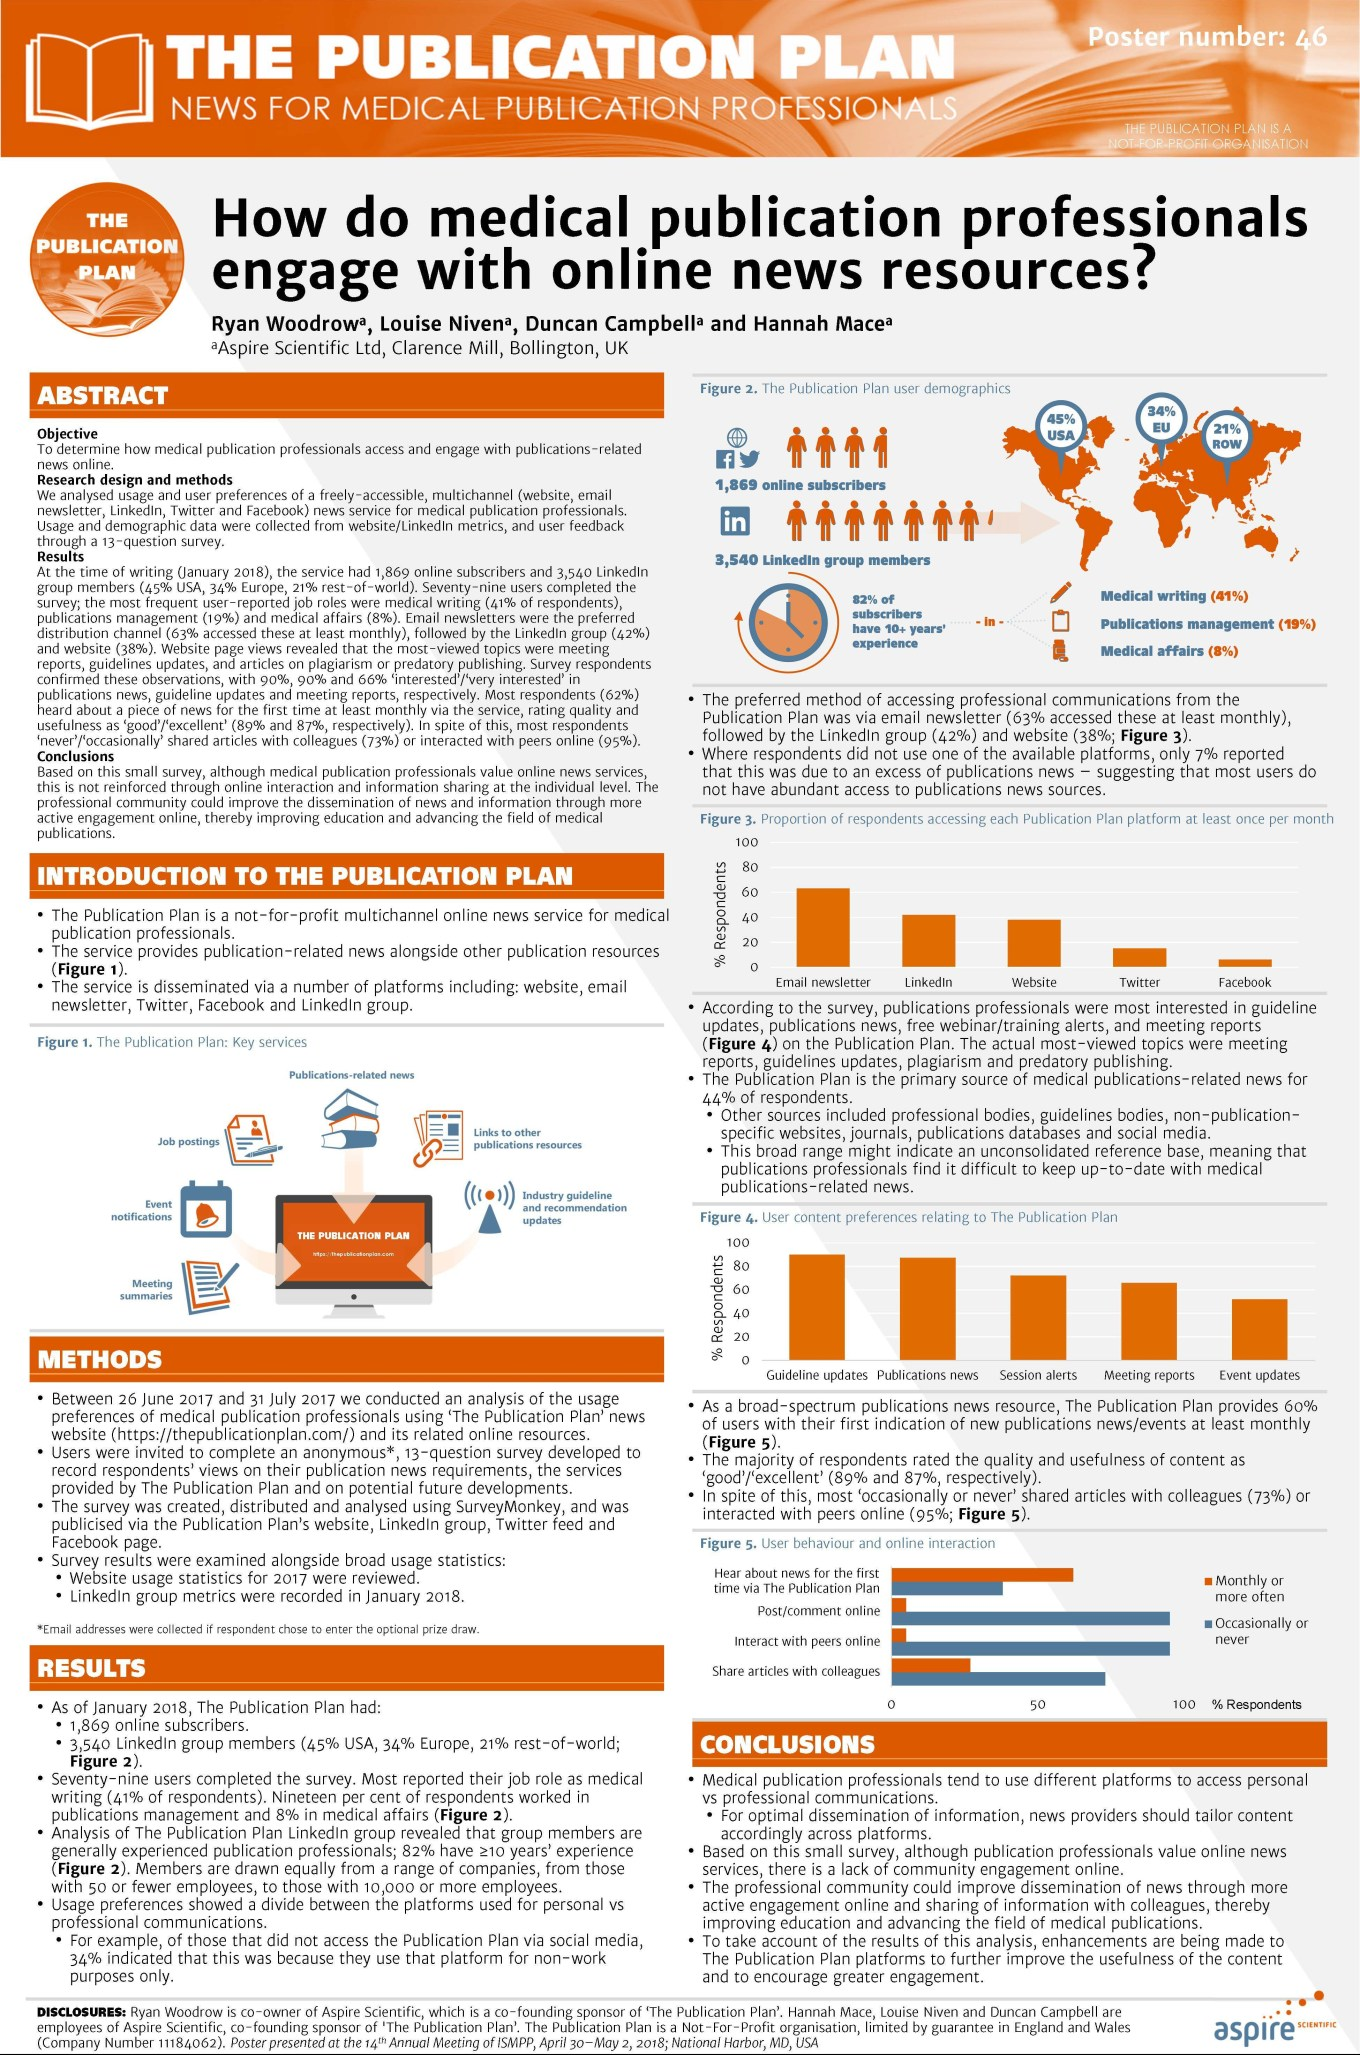 ISMPP US 2018 poster_final draft_18Apr2018.jpg